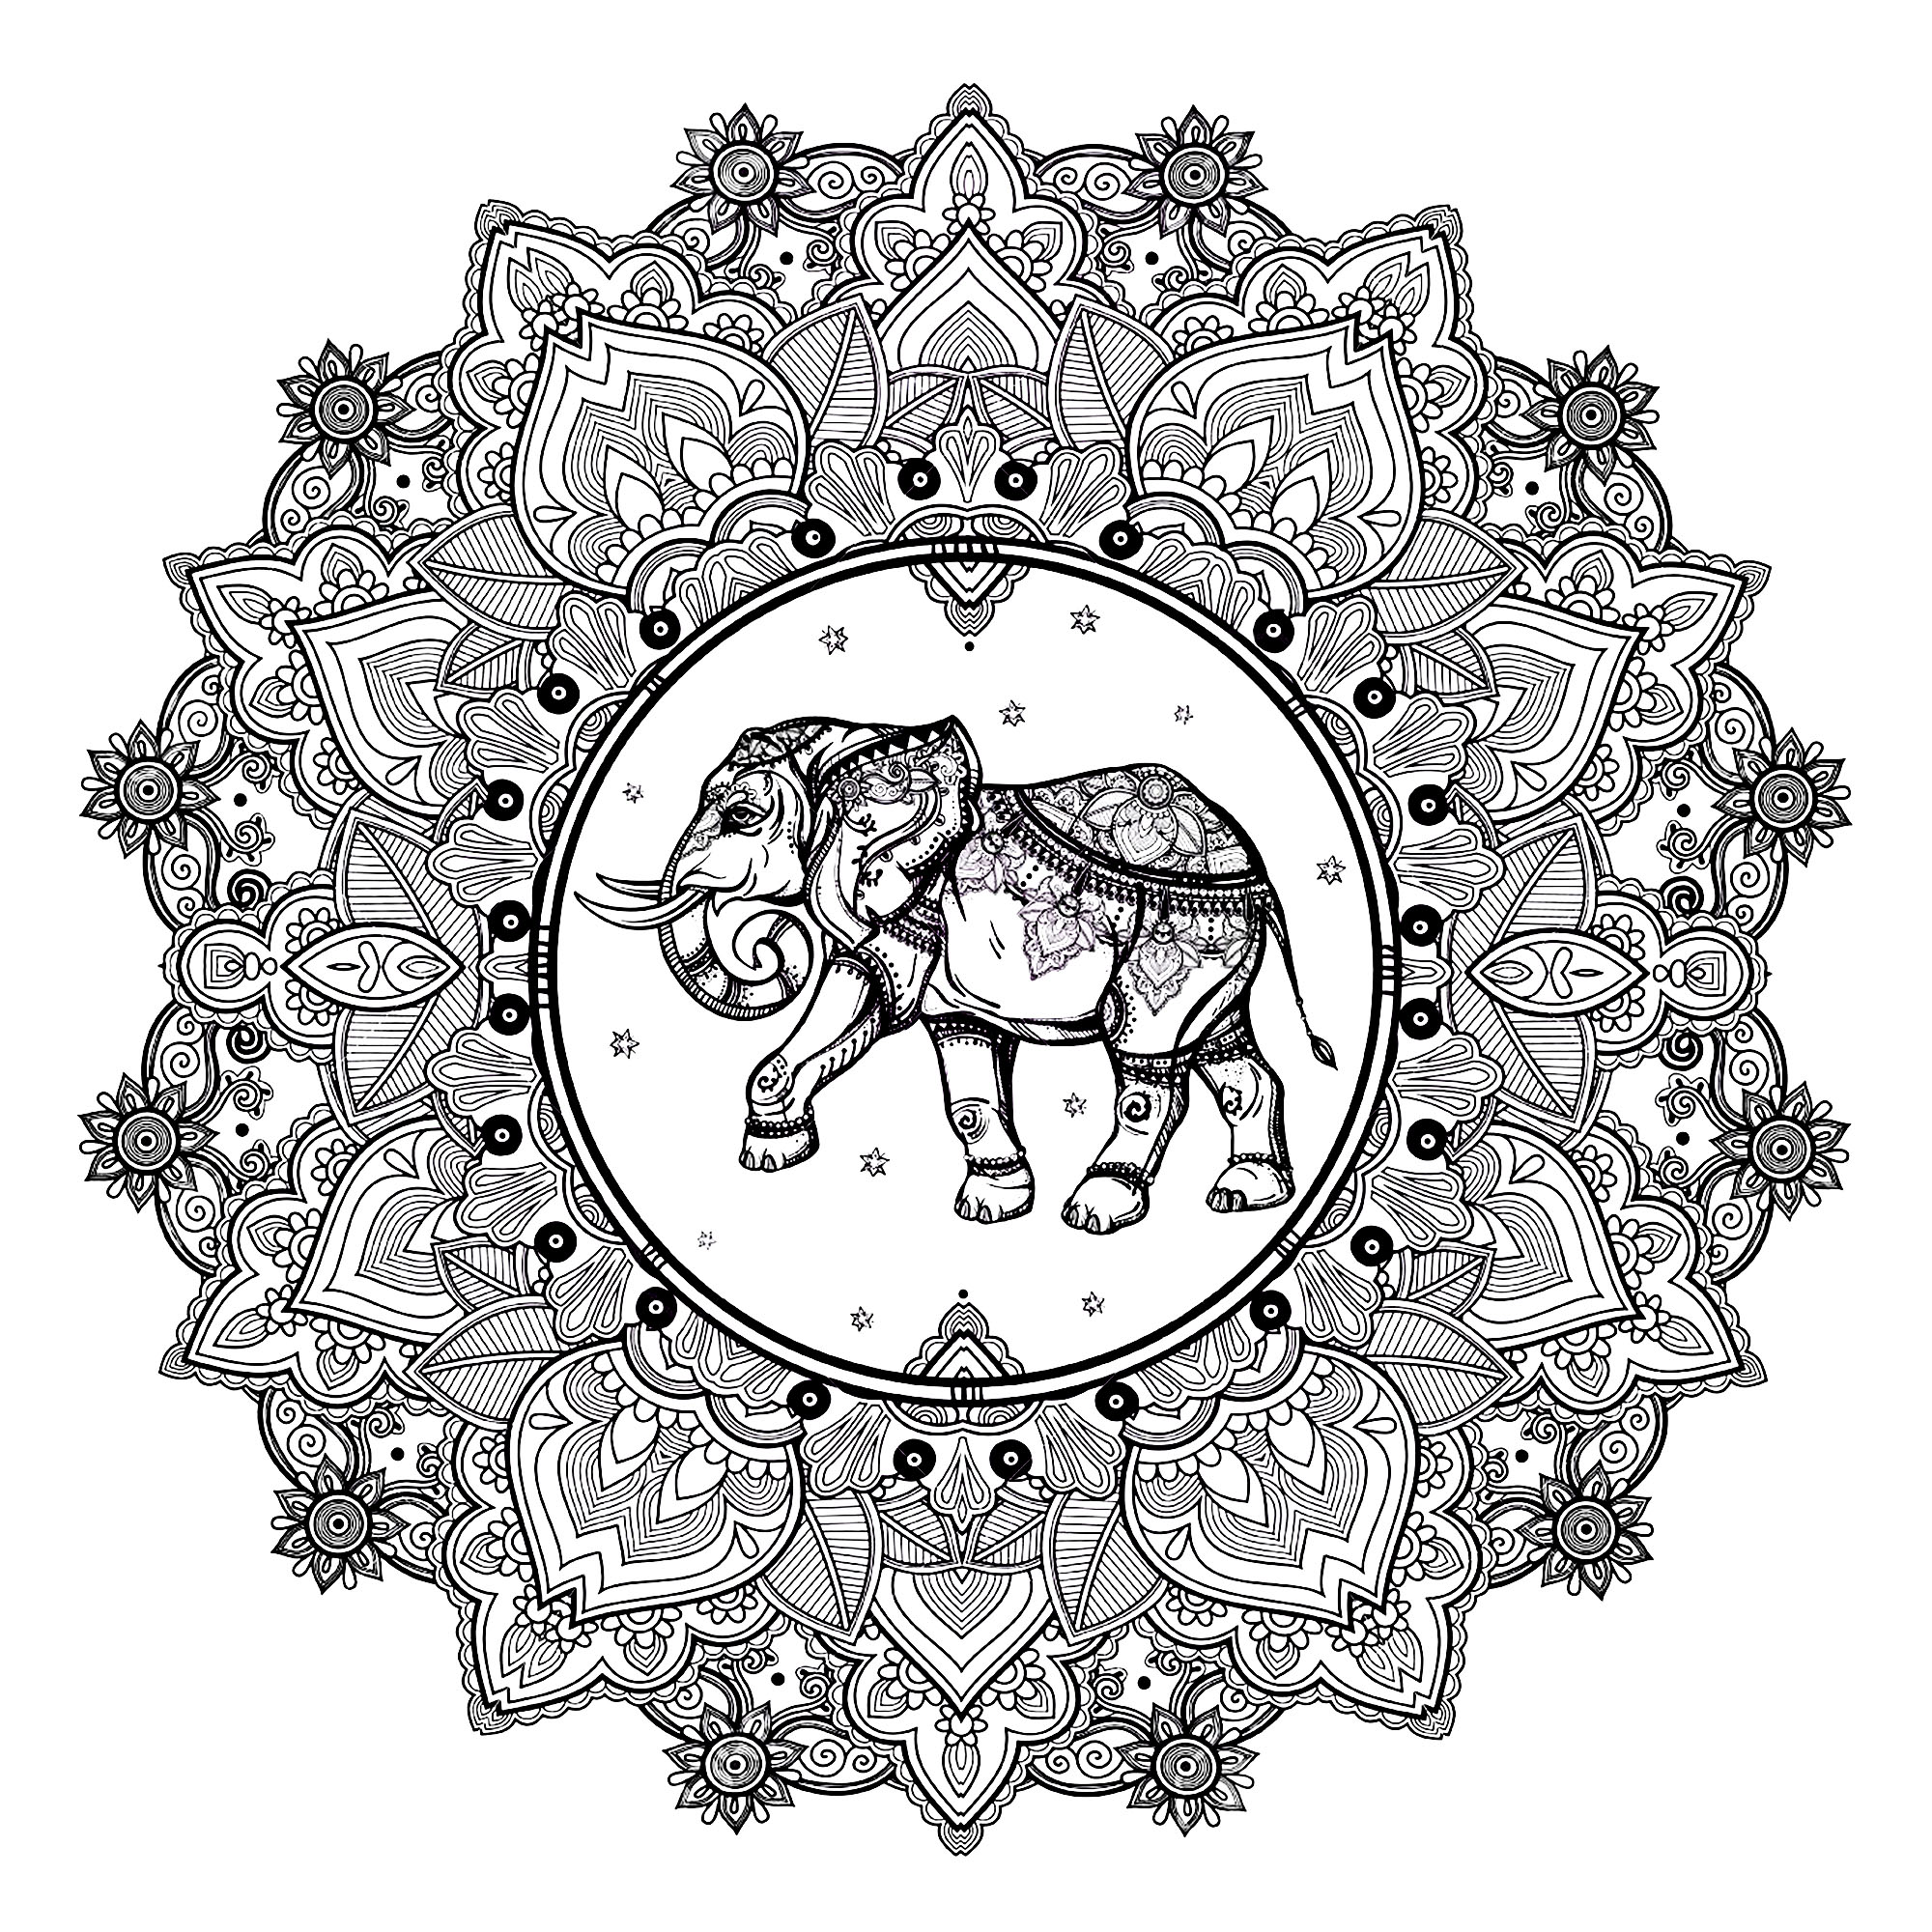 Mandala to print and color, with beautiful elephant in center